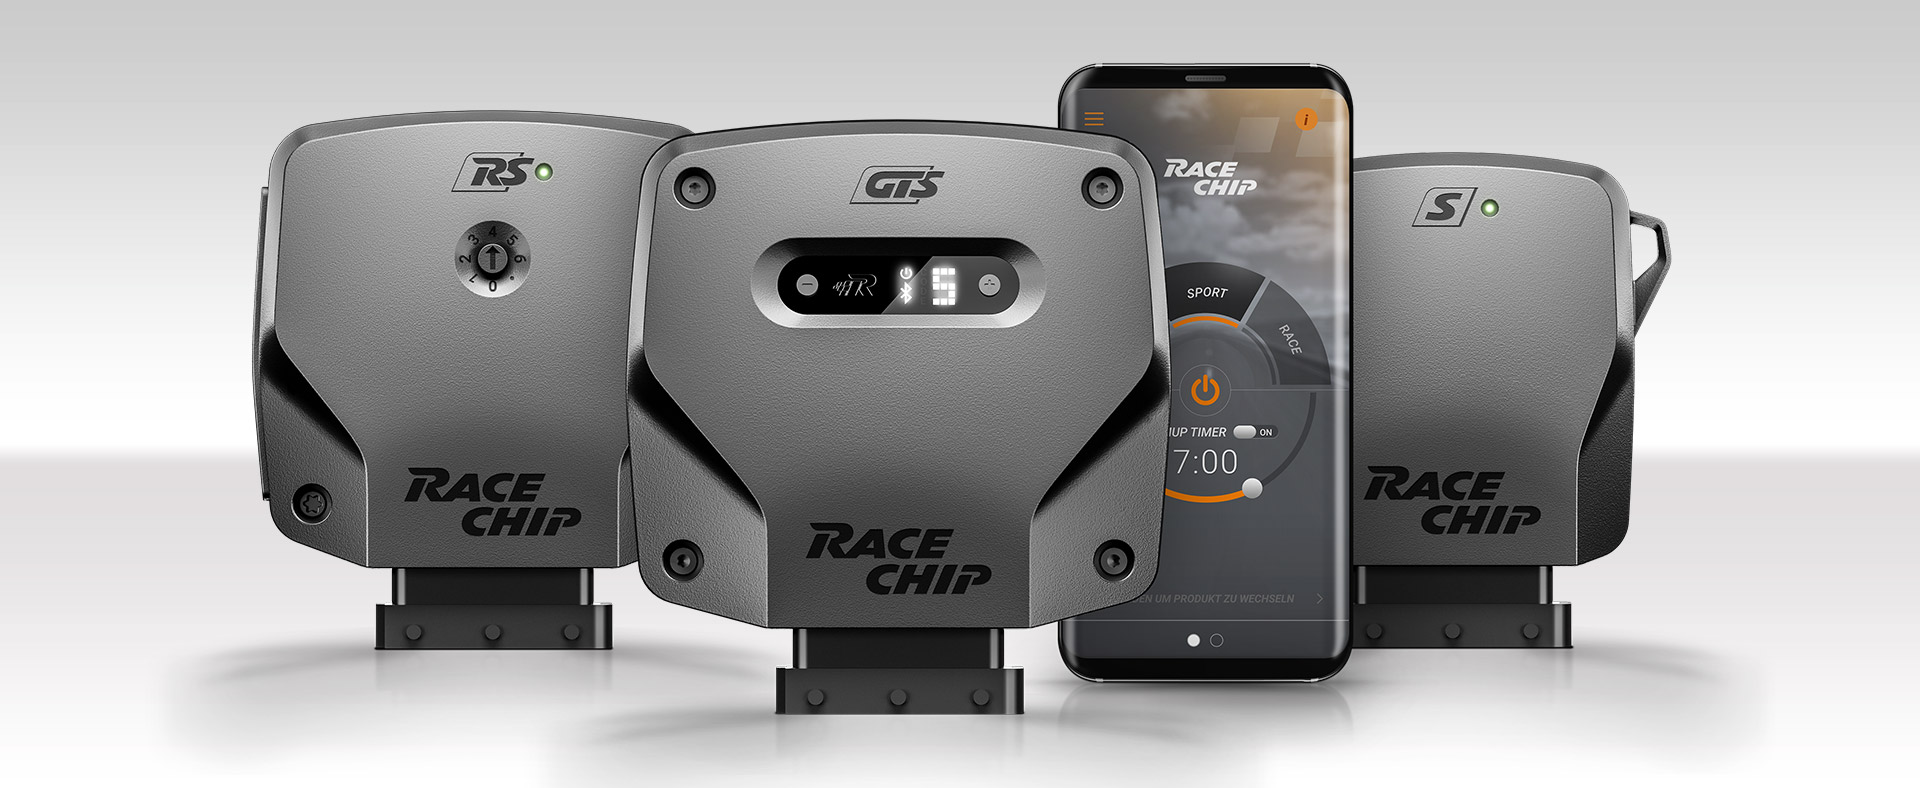 RaceChip presents brand new product line-up in Birmingham